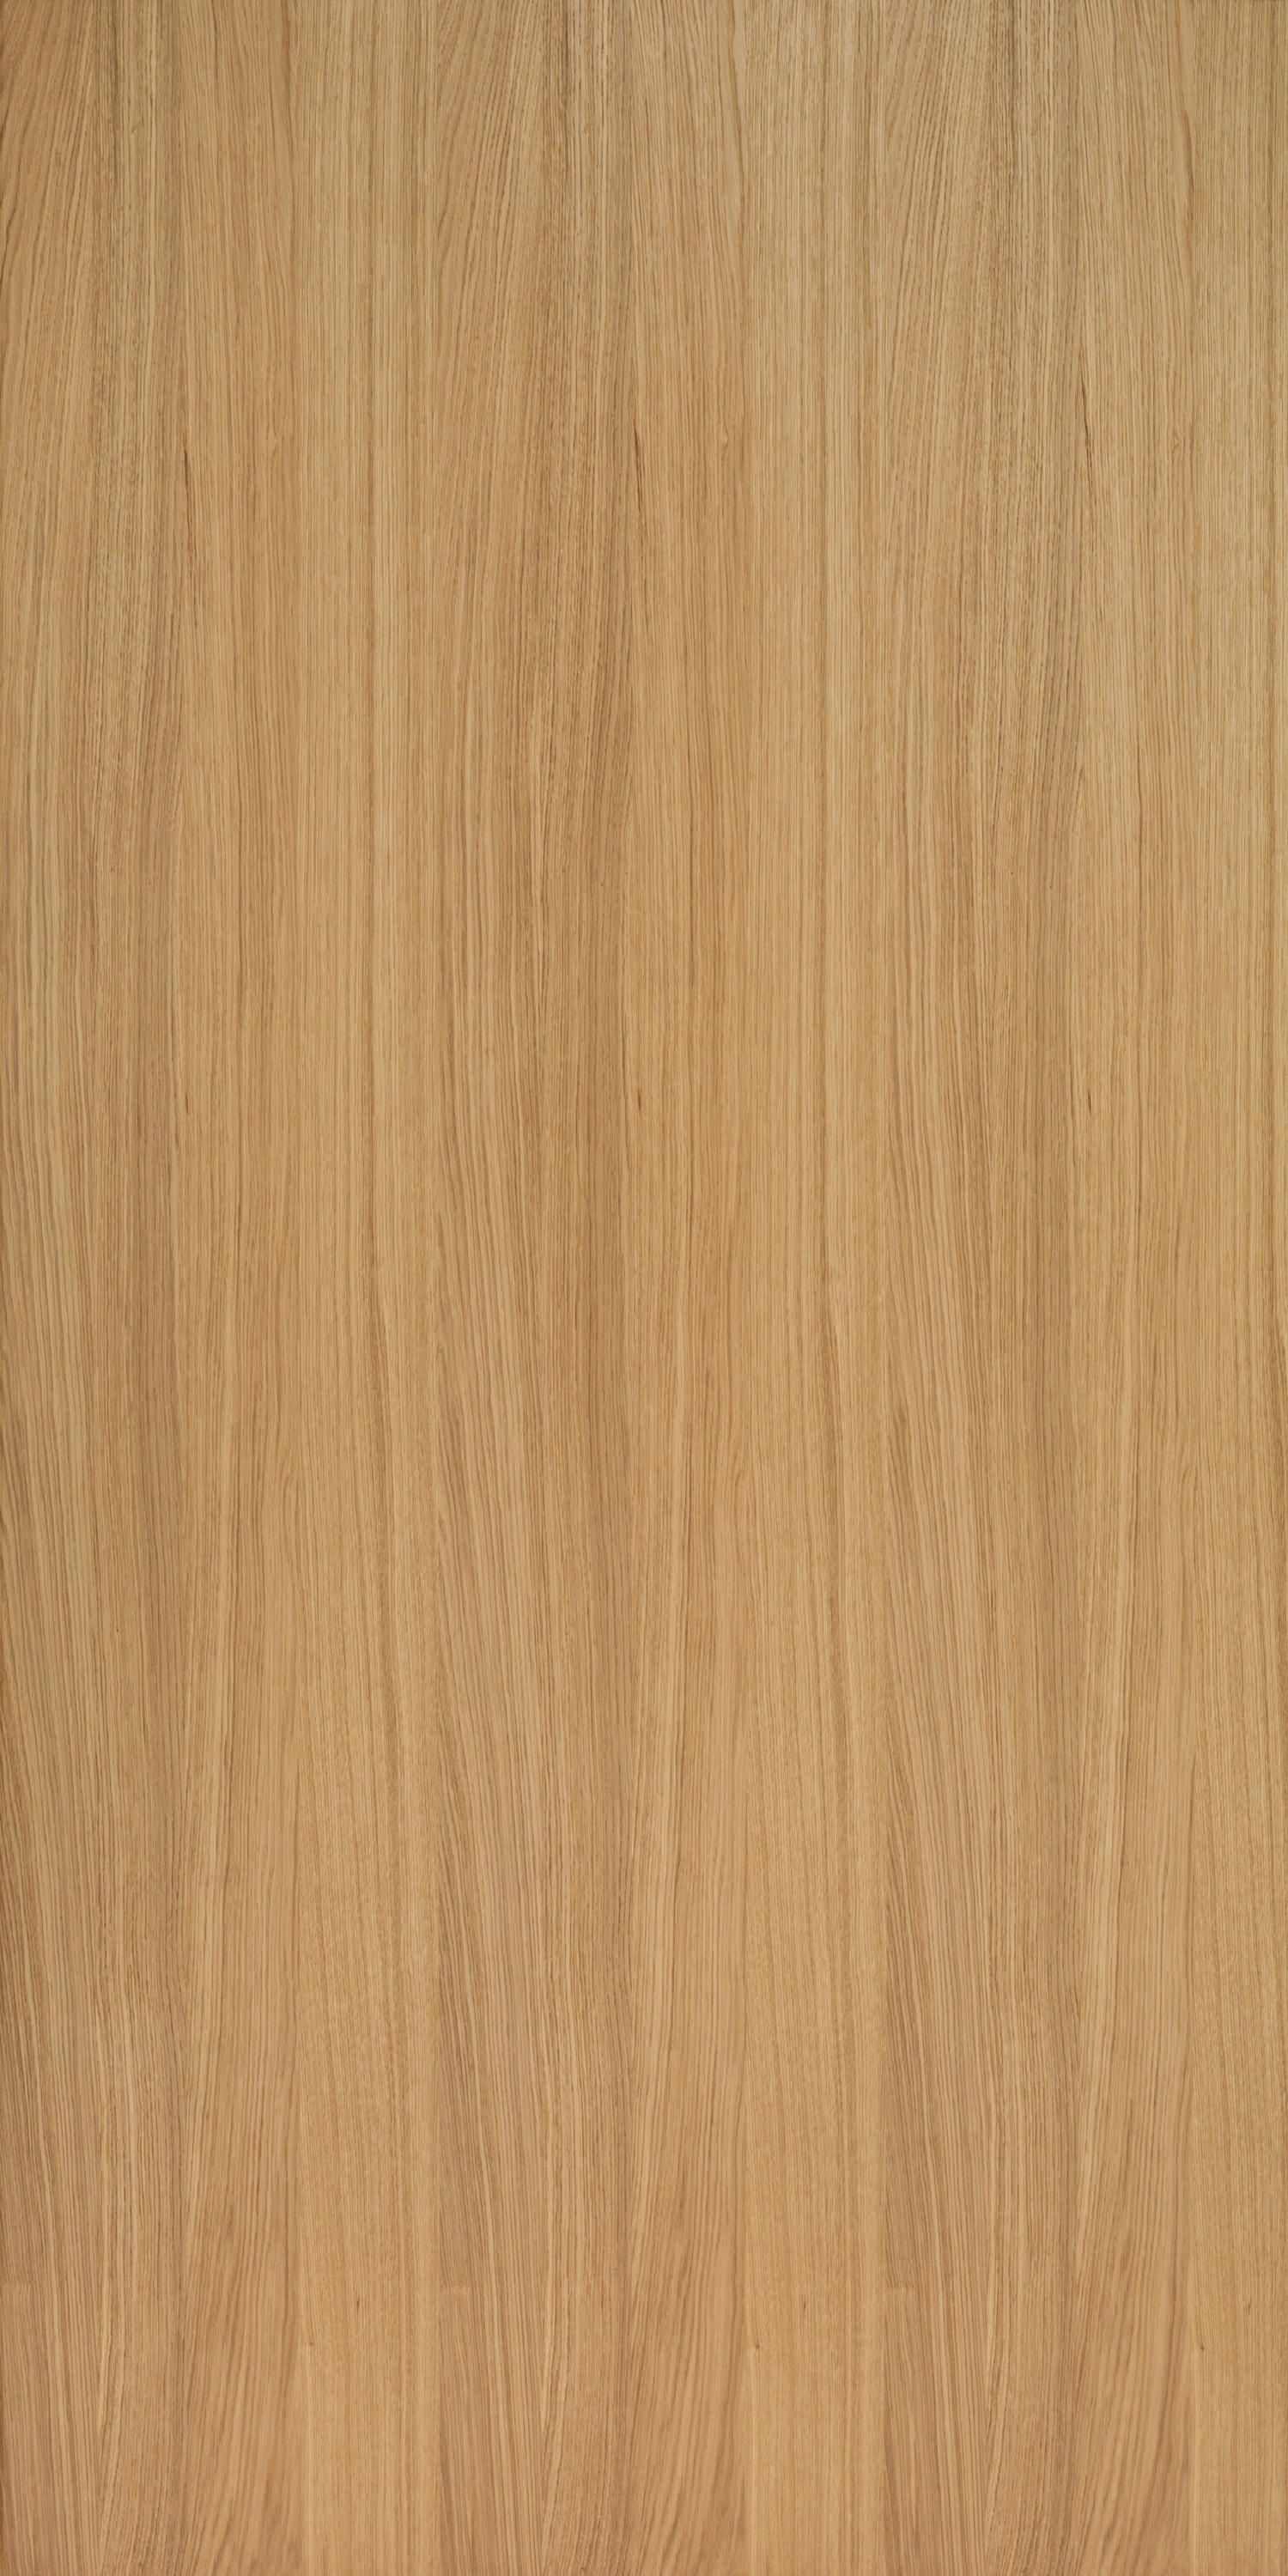 Querkus Oak Naturel Adagio Designer Wall Veneers From Decospan All Information High Resolution Images Oak Wood Texture Veneer Texture Laminate Texture